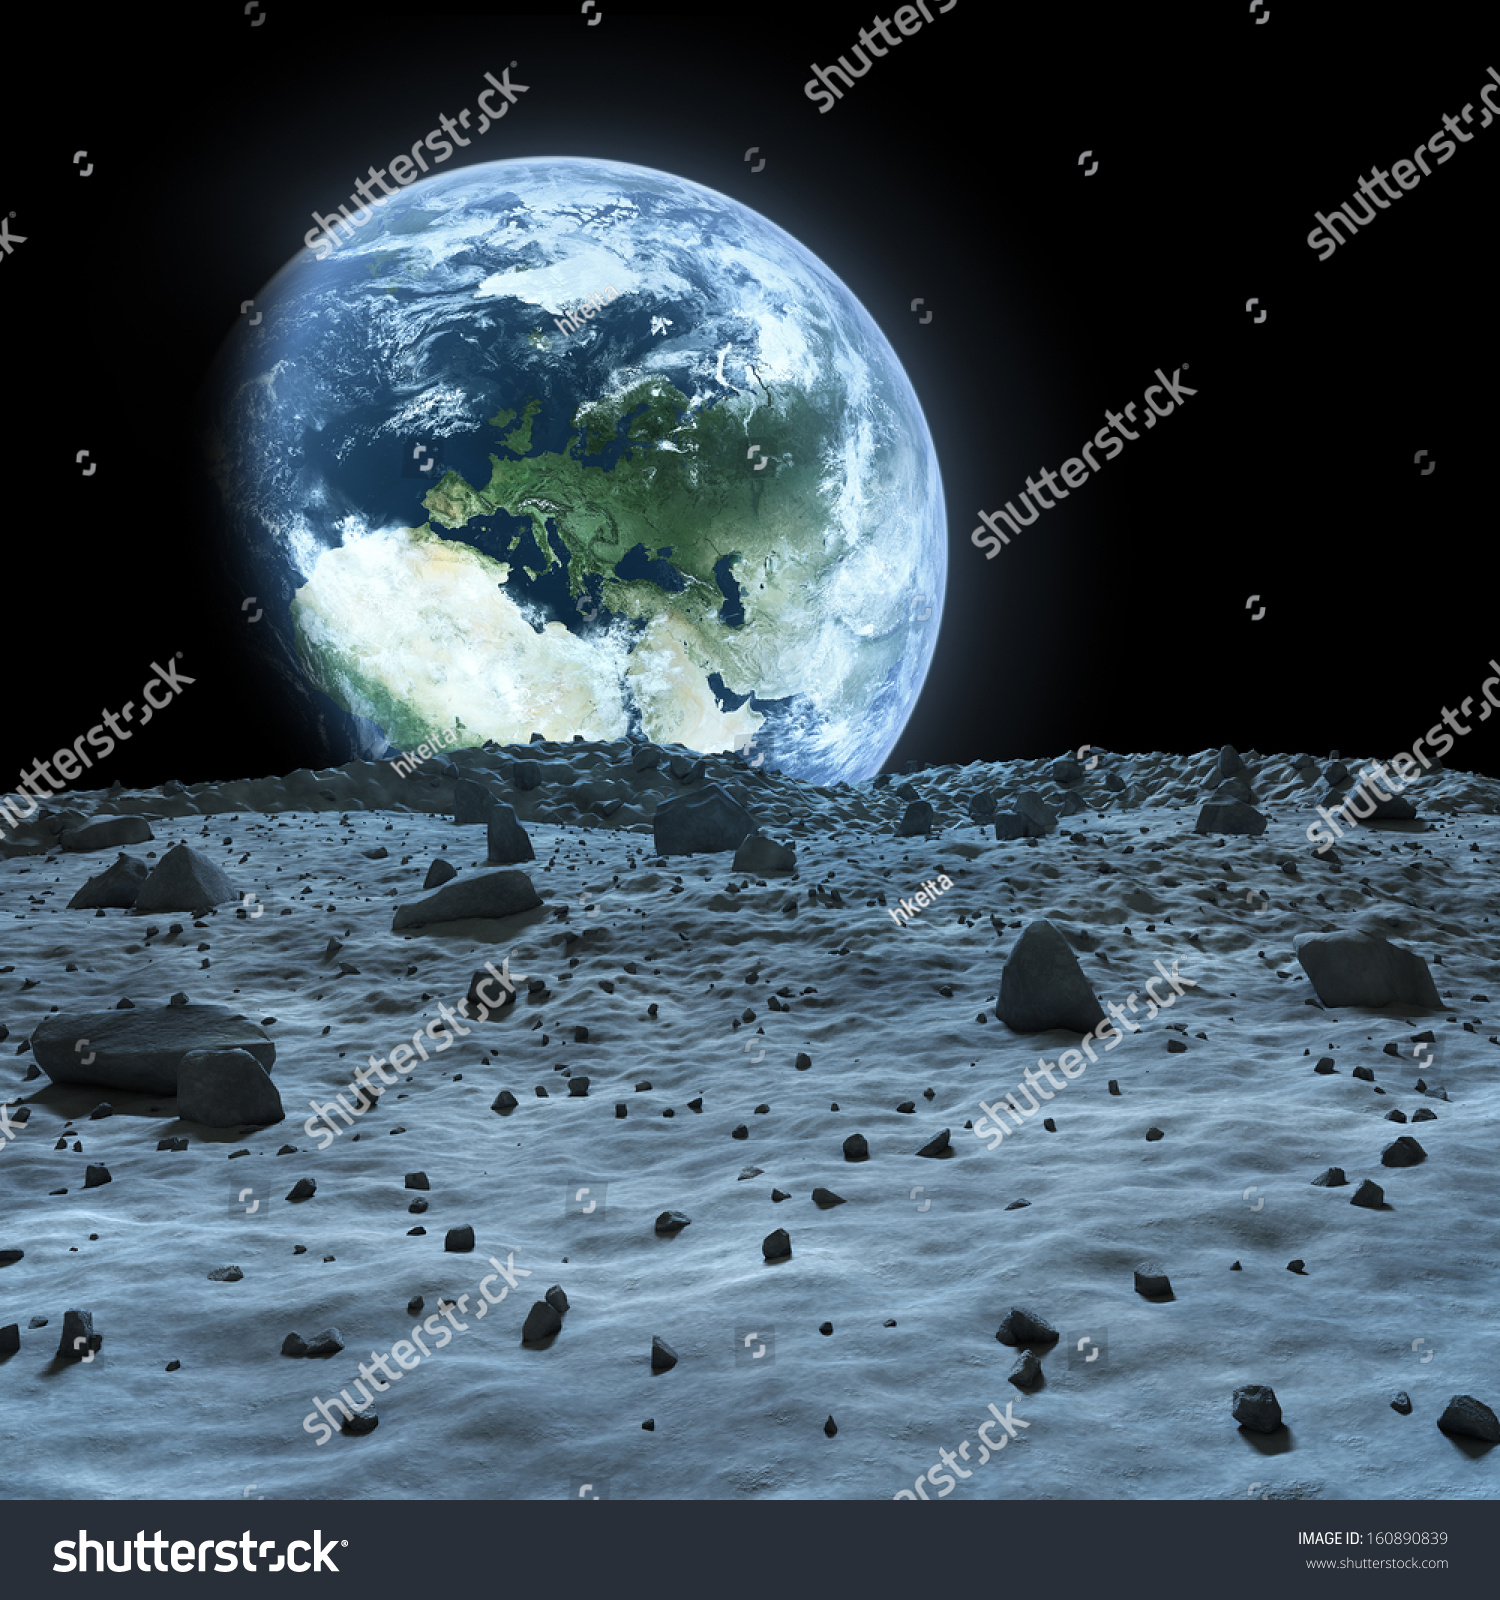 Earth Seen Moon Elements This Image Stock Illustration ...